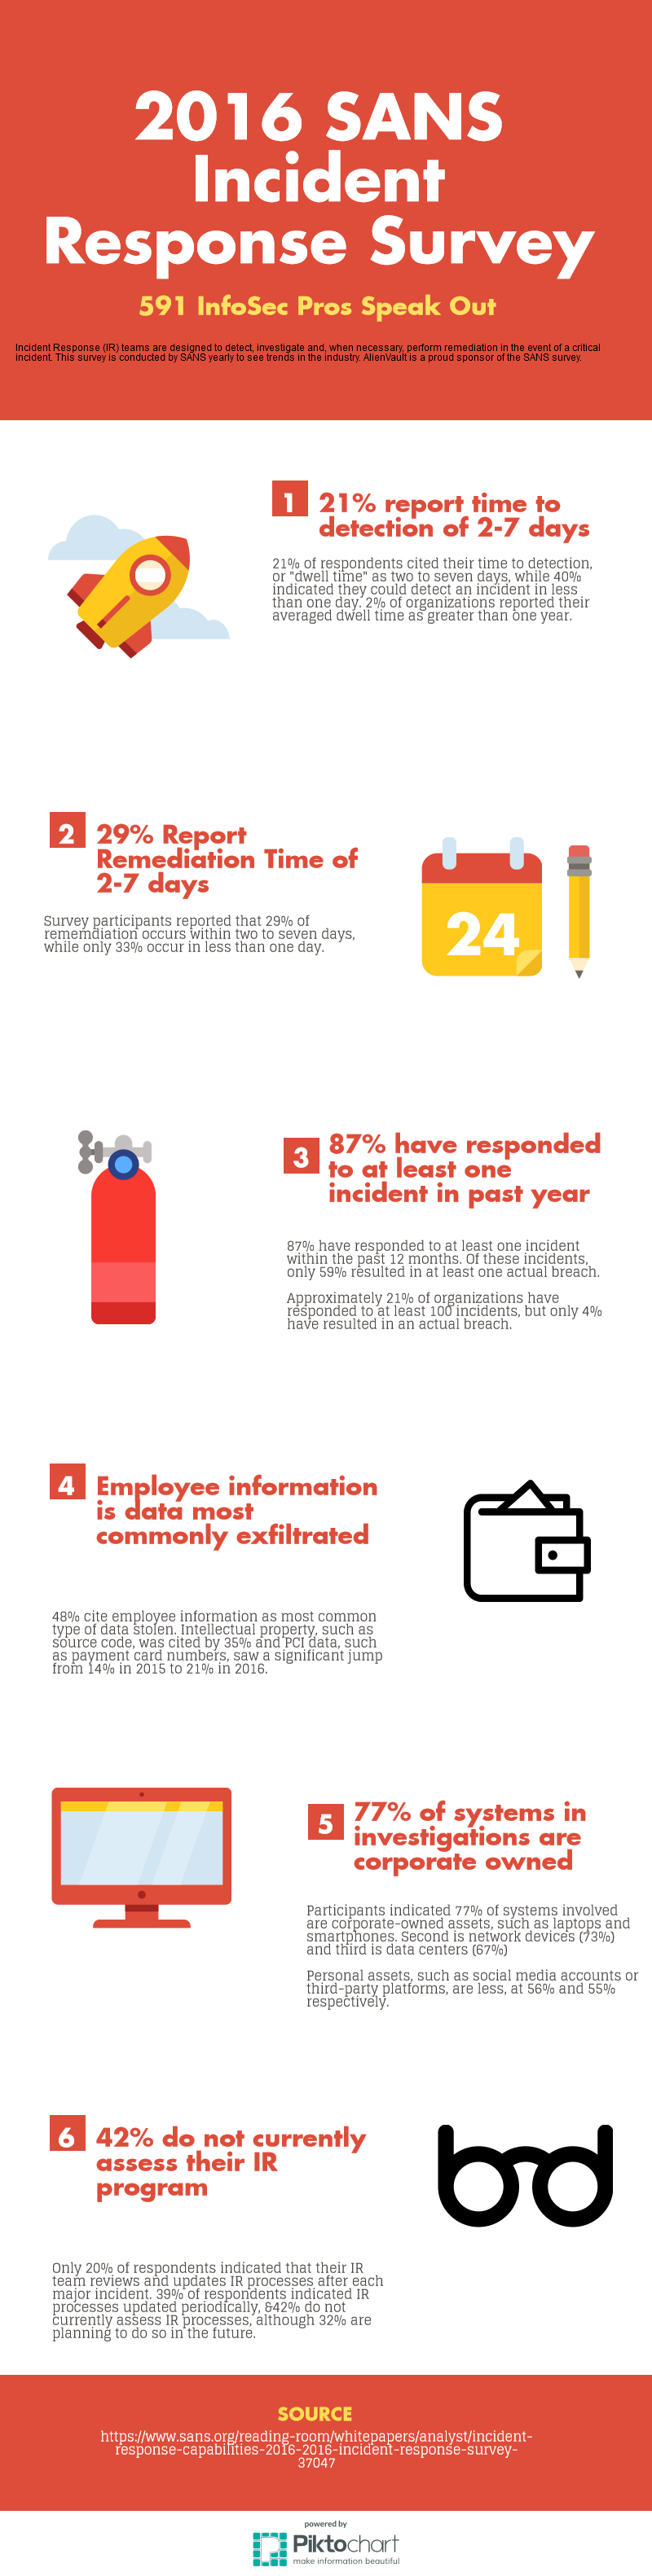 2016 SANS survey on Incident Response Infographic